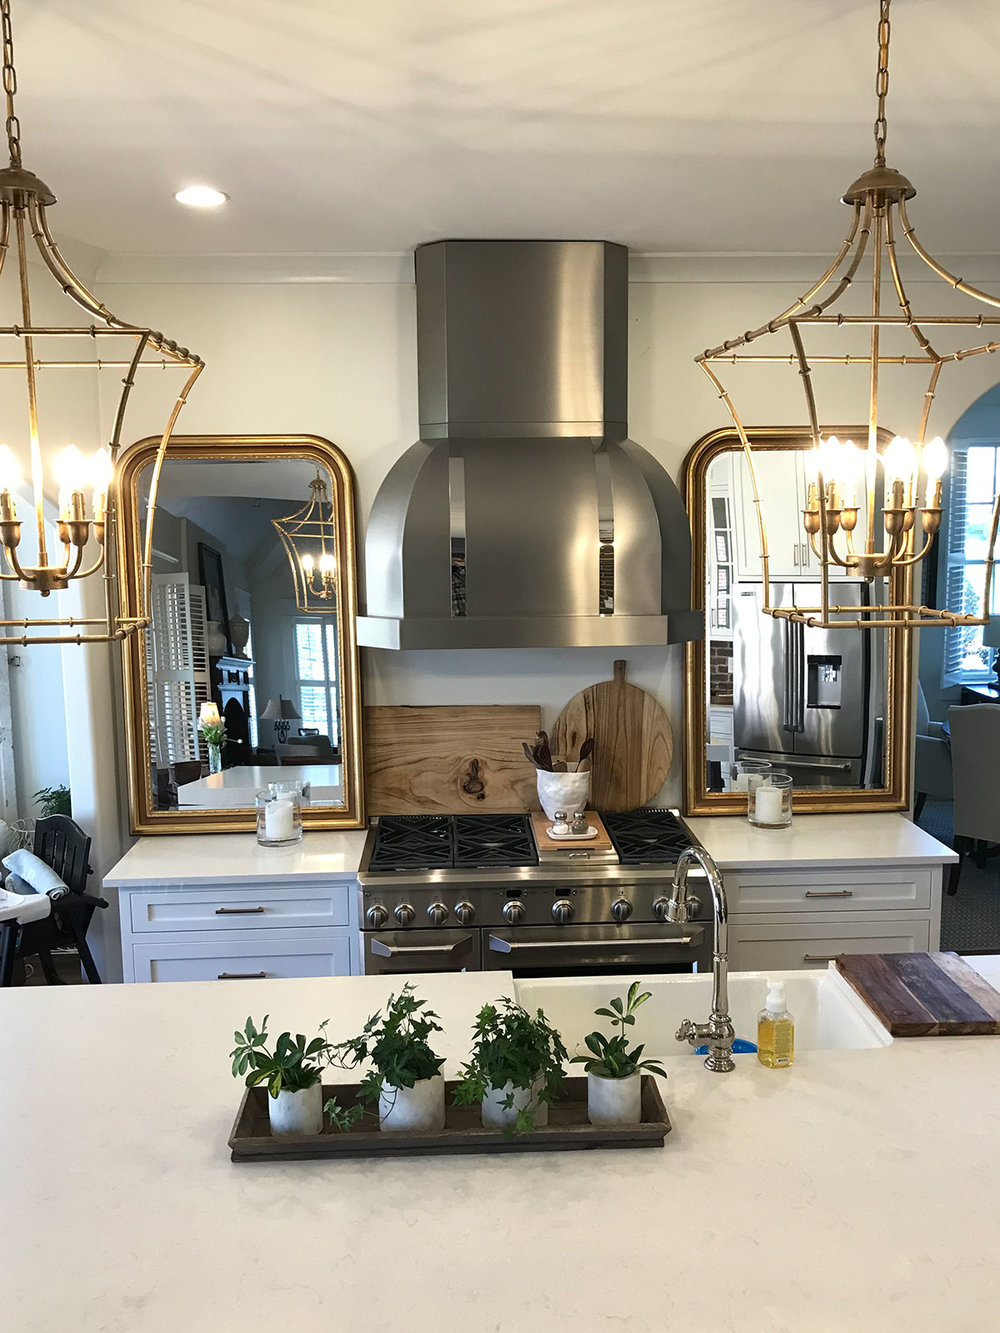 Reimagined Gatherings - Full Kitchen Transformation